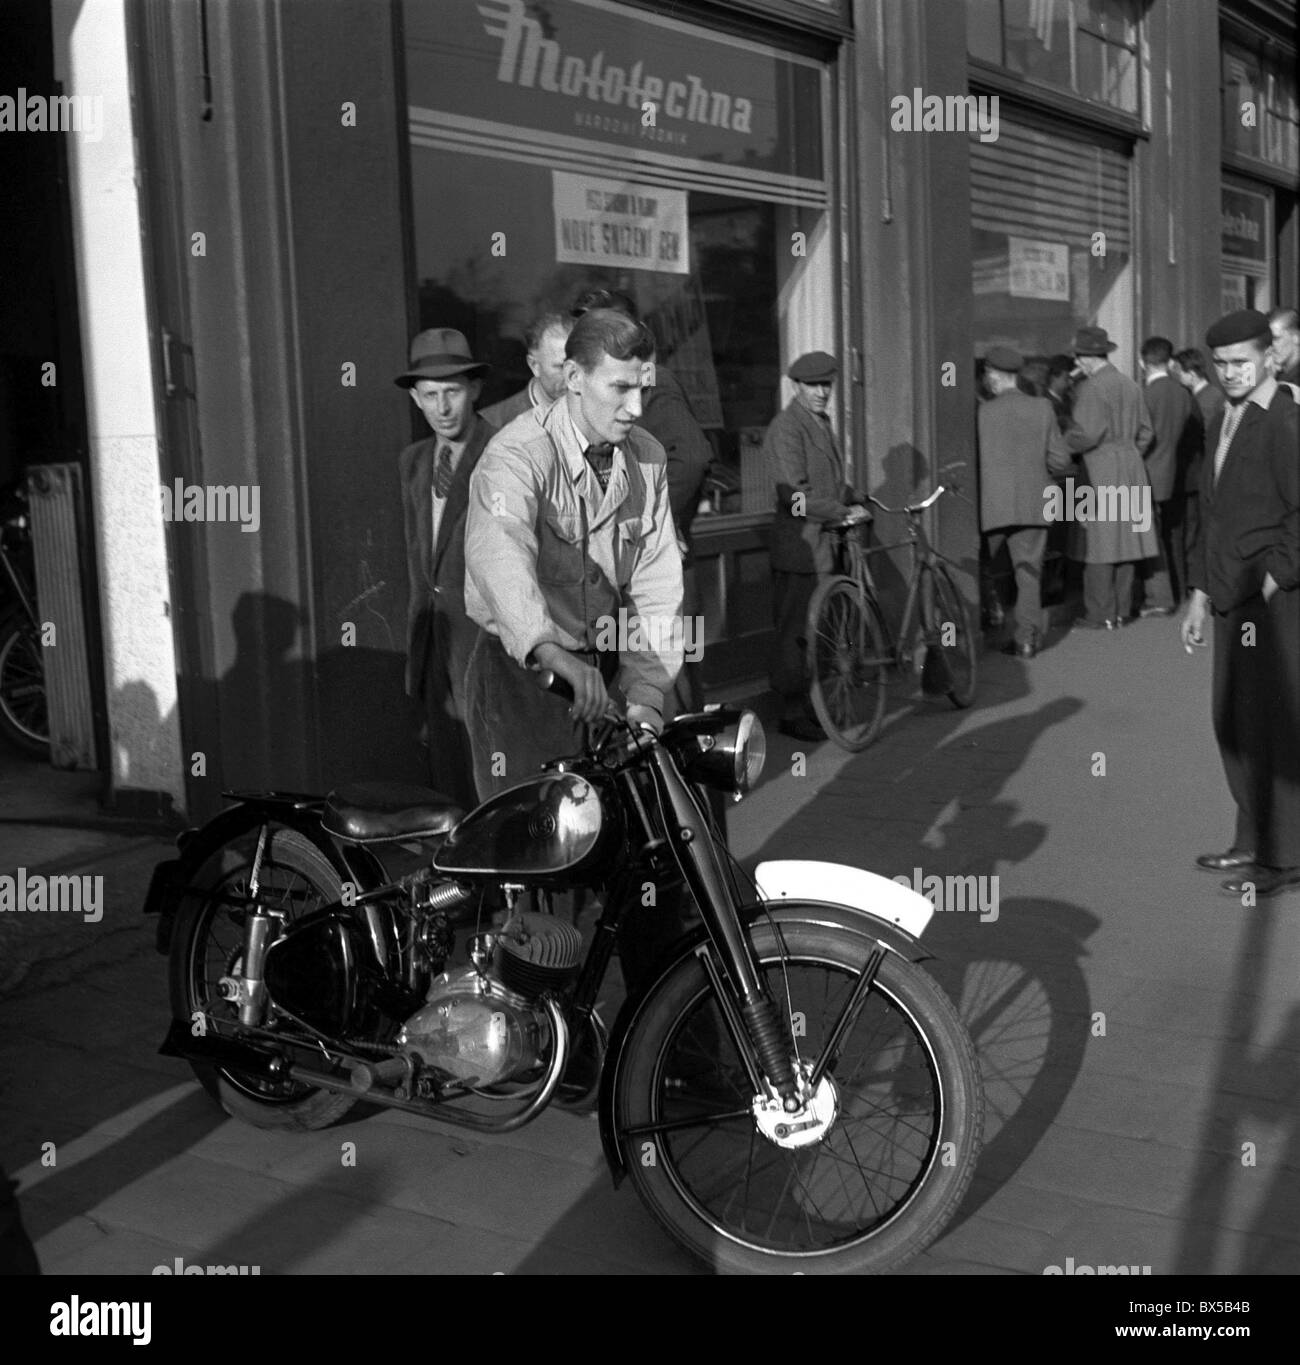 CZ motorcycle, shop, shopping, miner - Stock Image